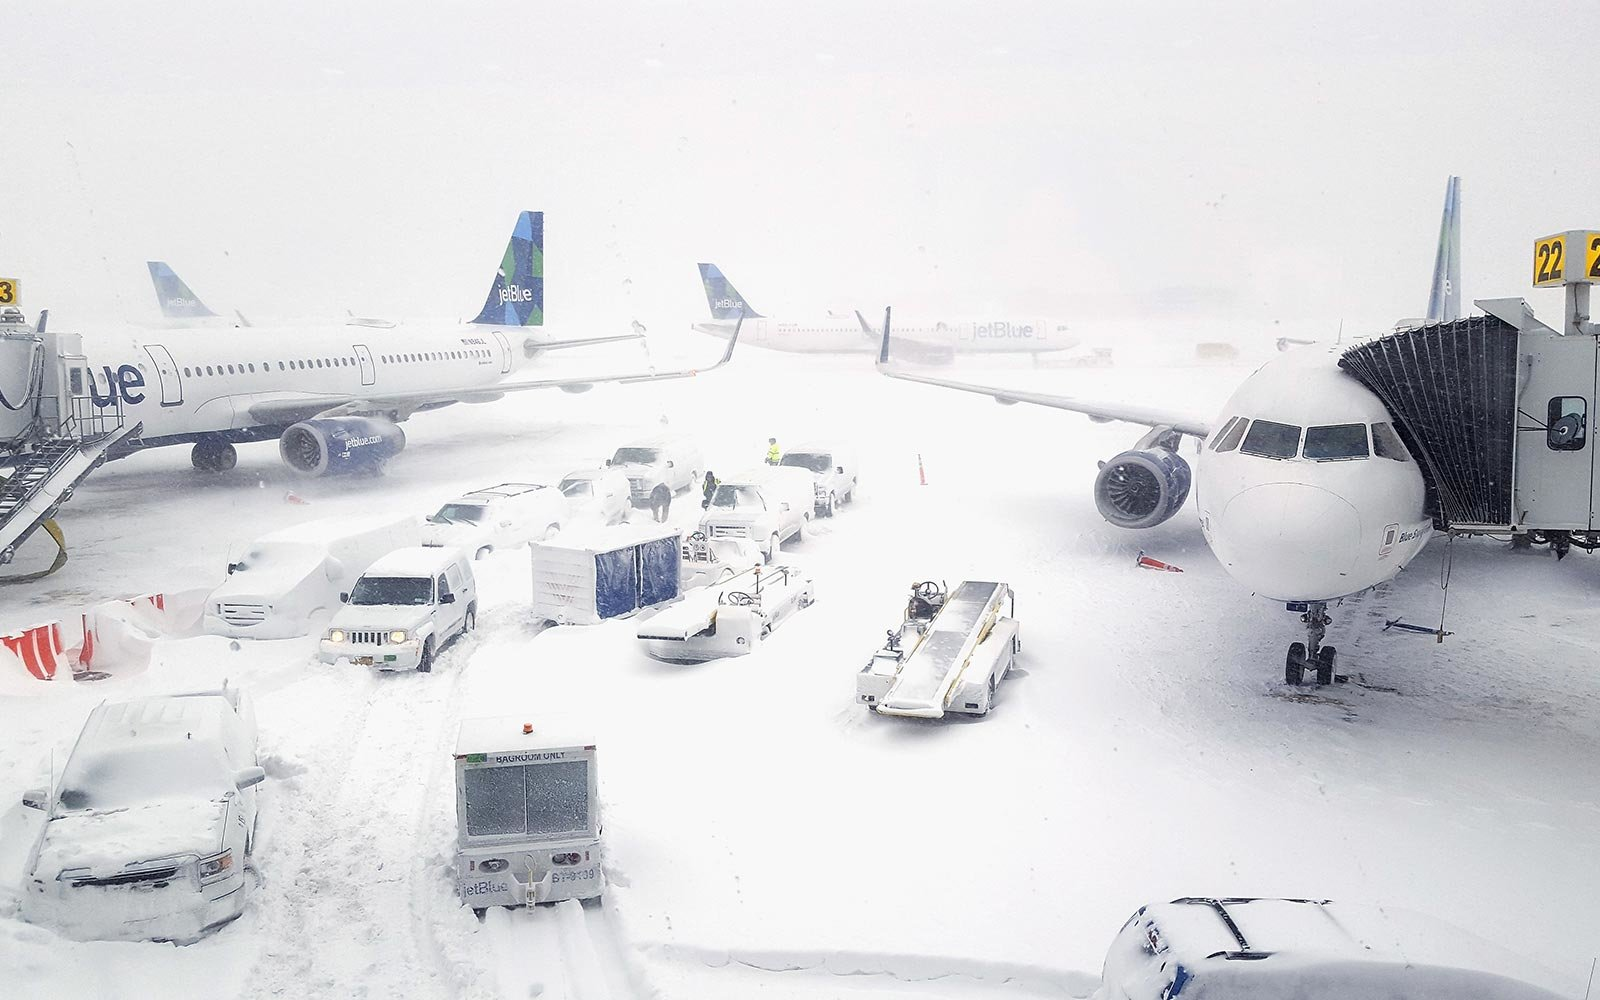 JetBlue Airplanes Winter Storm Snow